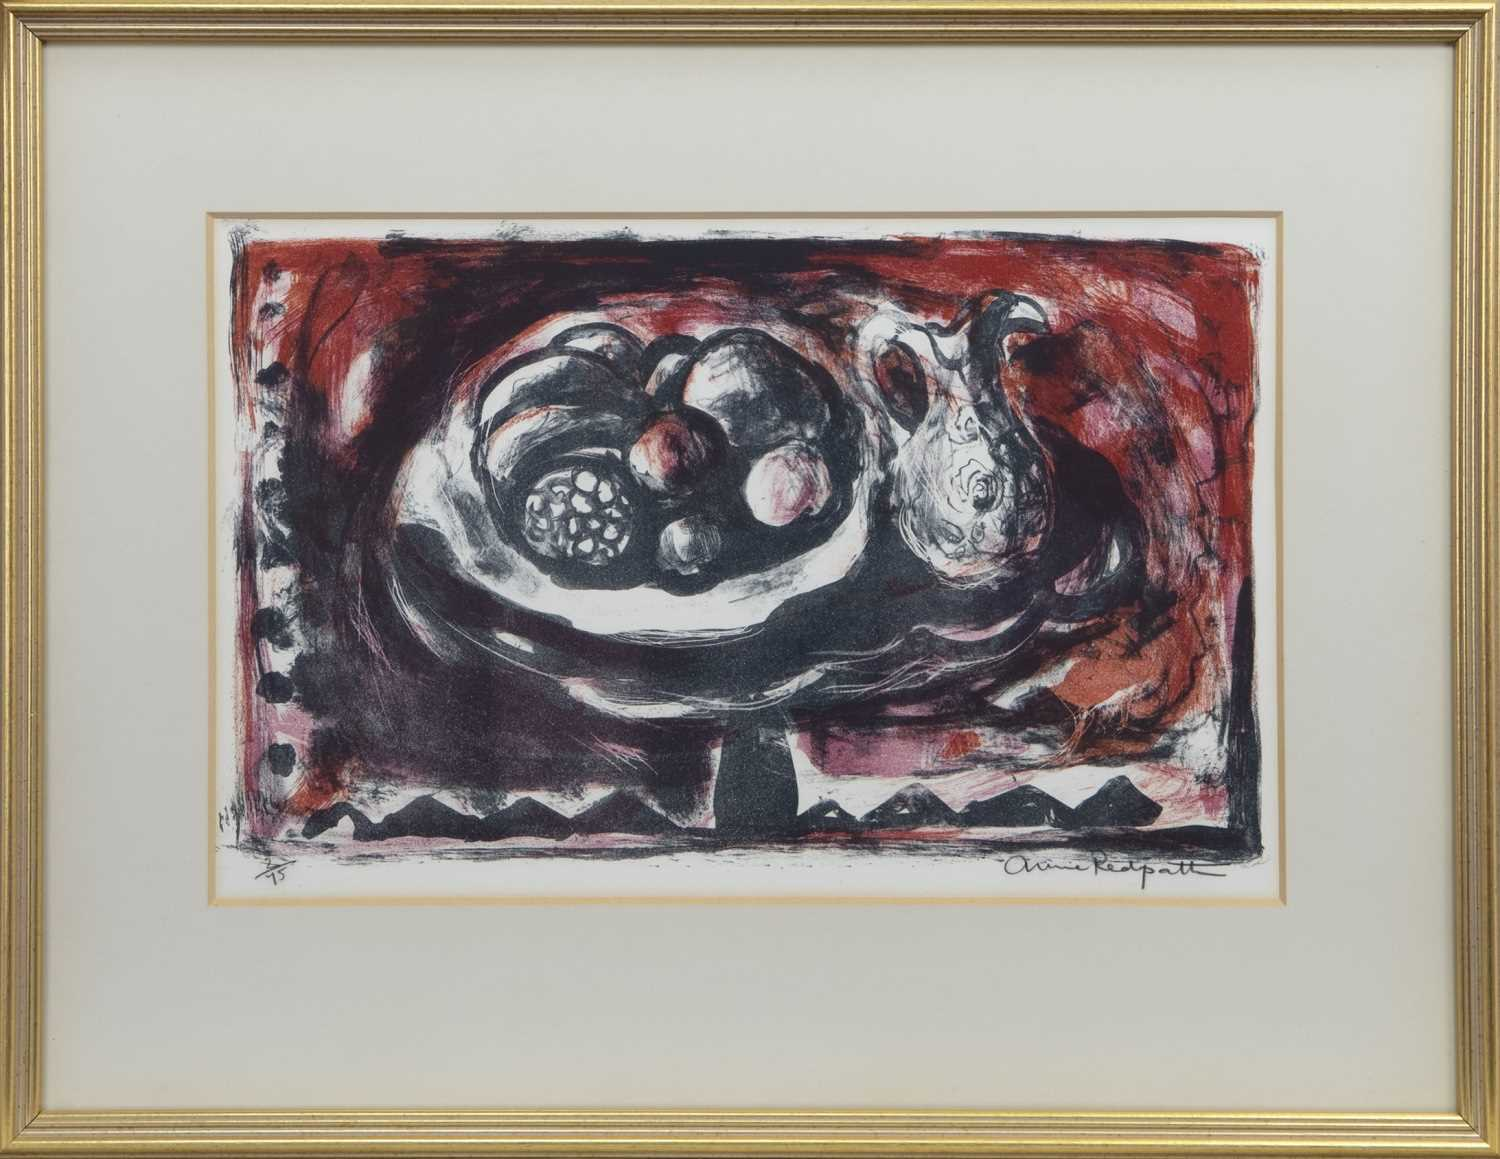 Lot 505 - STILL LIFE WITH JUG, A SIGNED LIMITED EDITION LITHOGRAPH BY ANNE REDPATH